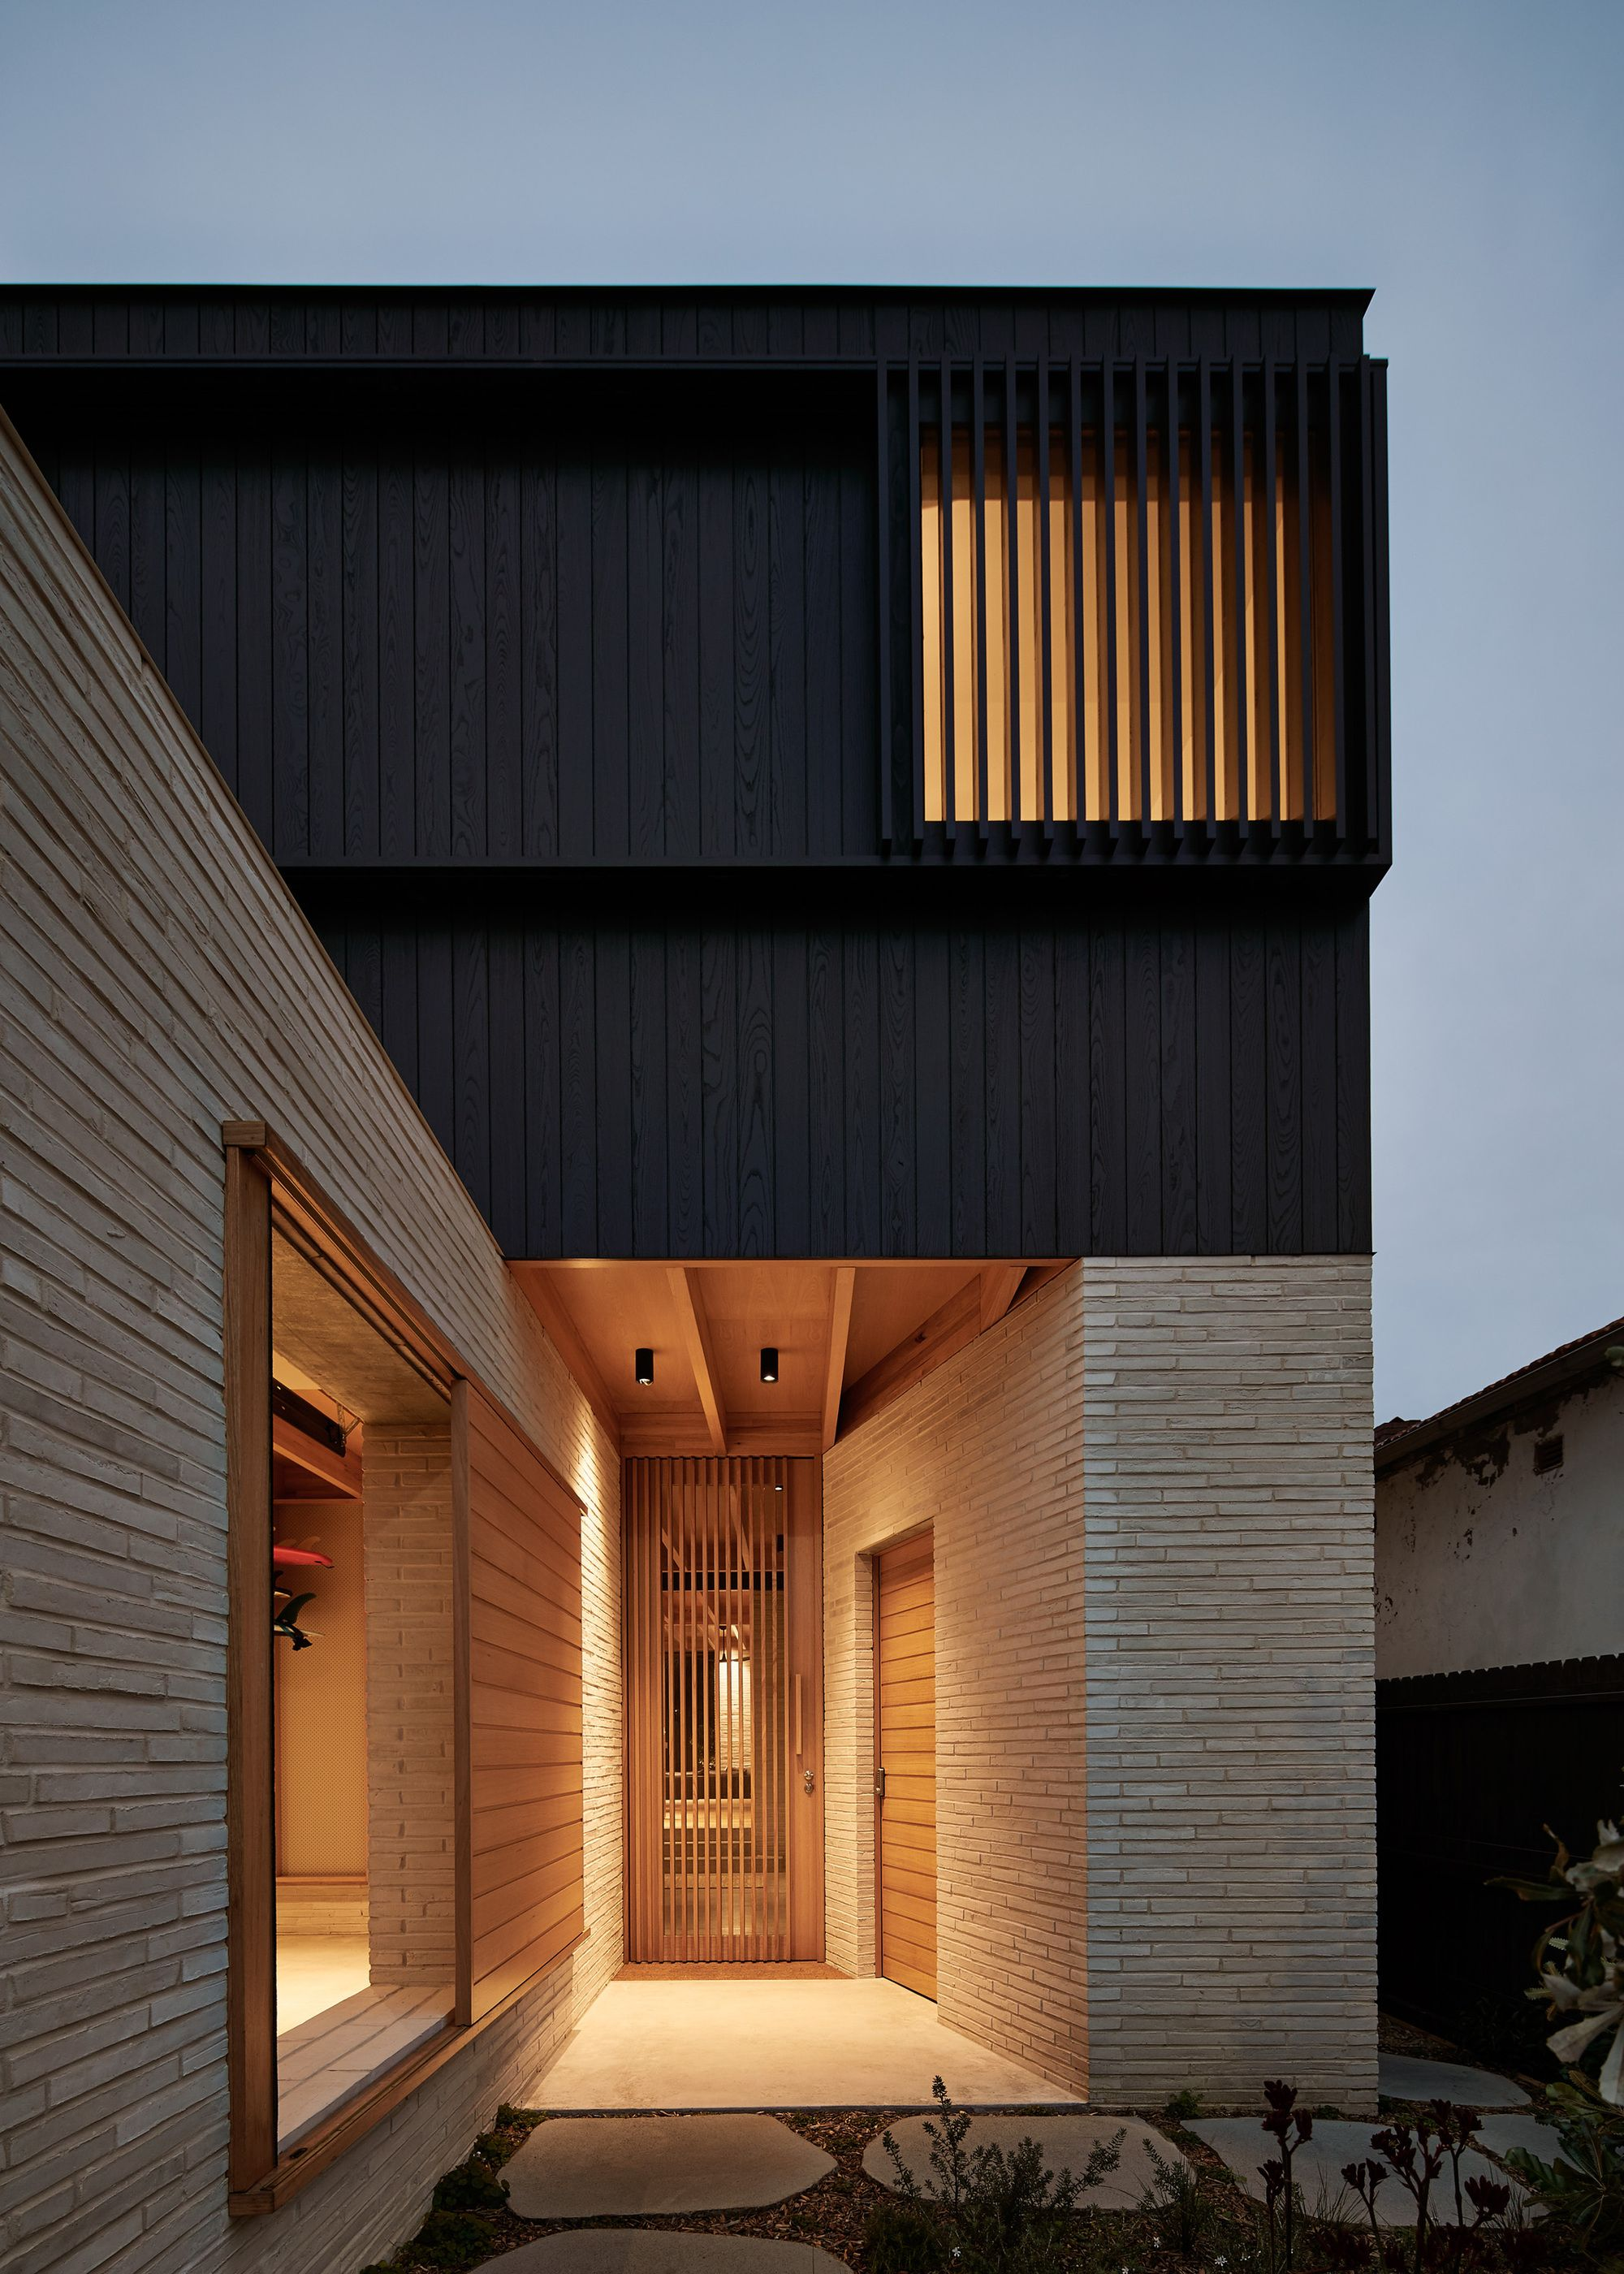 Image 3 Of 22 From Gallery Of Brick House Andrew Burges Architects Photograph By Peter Bennetts Modern Brick House Brick Exterior House Brick House Designs